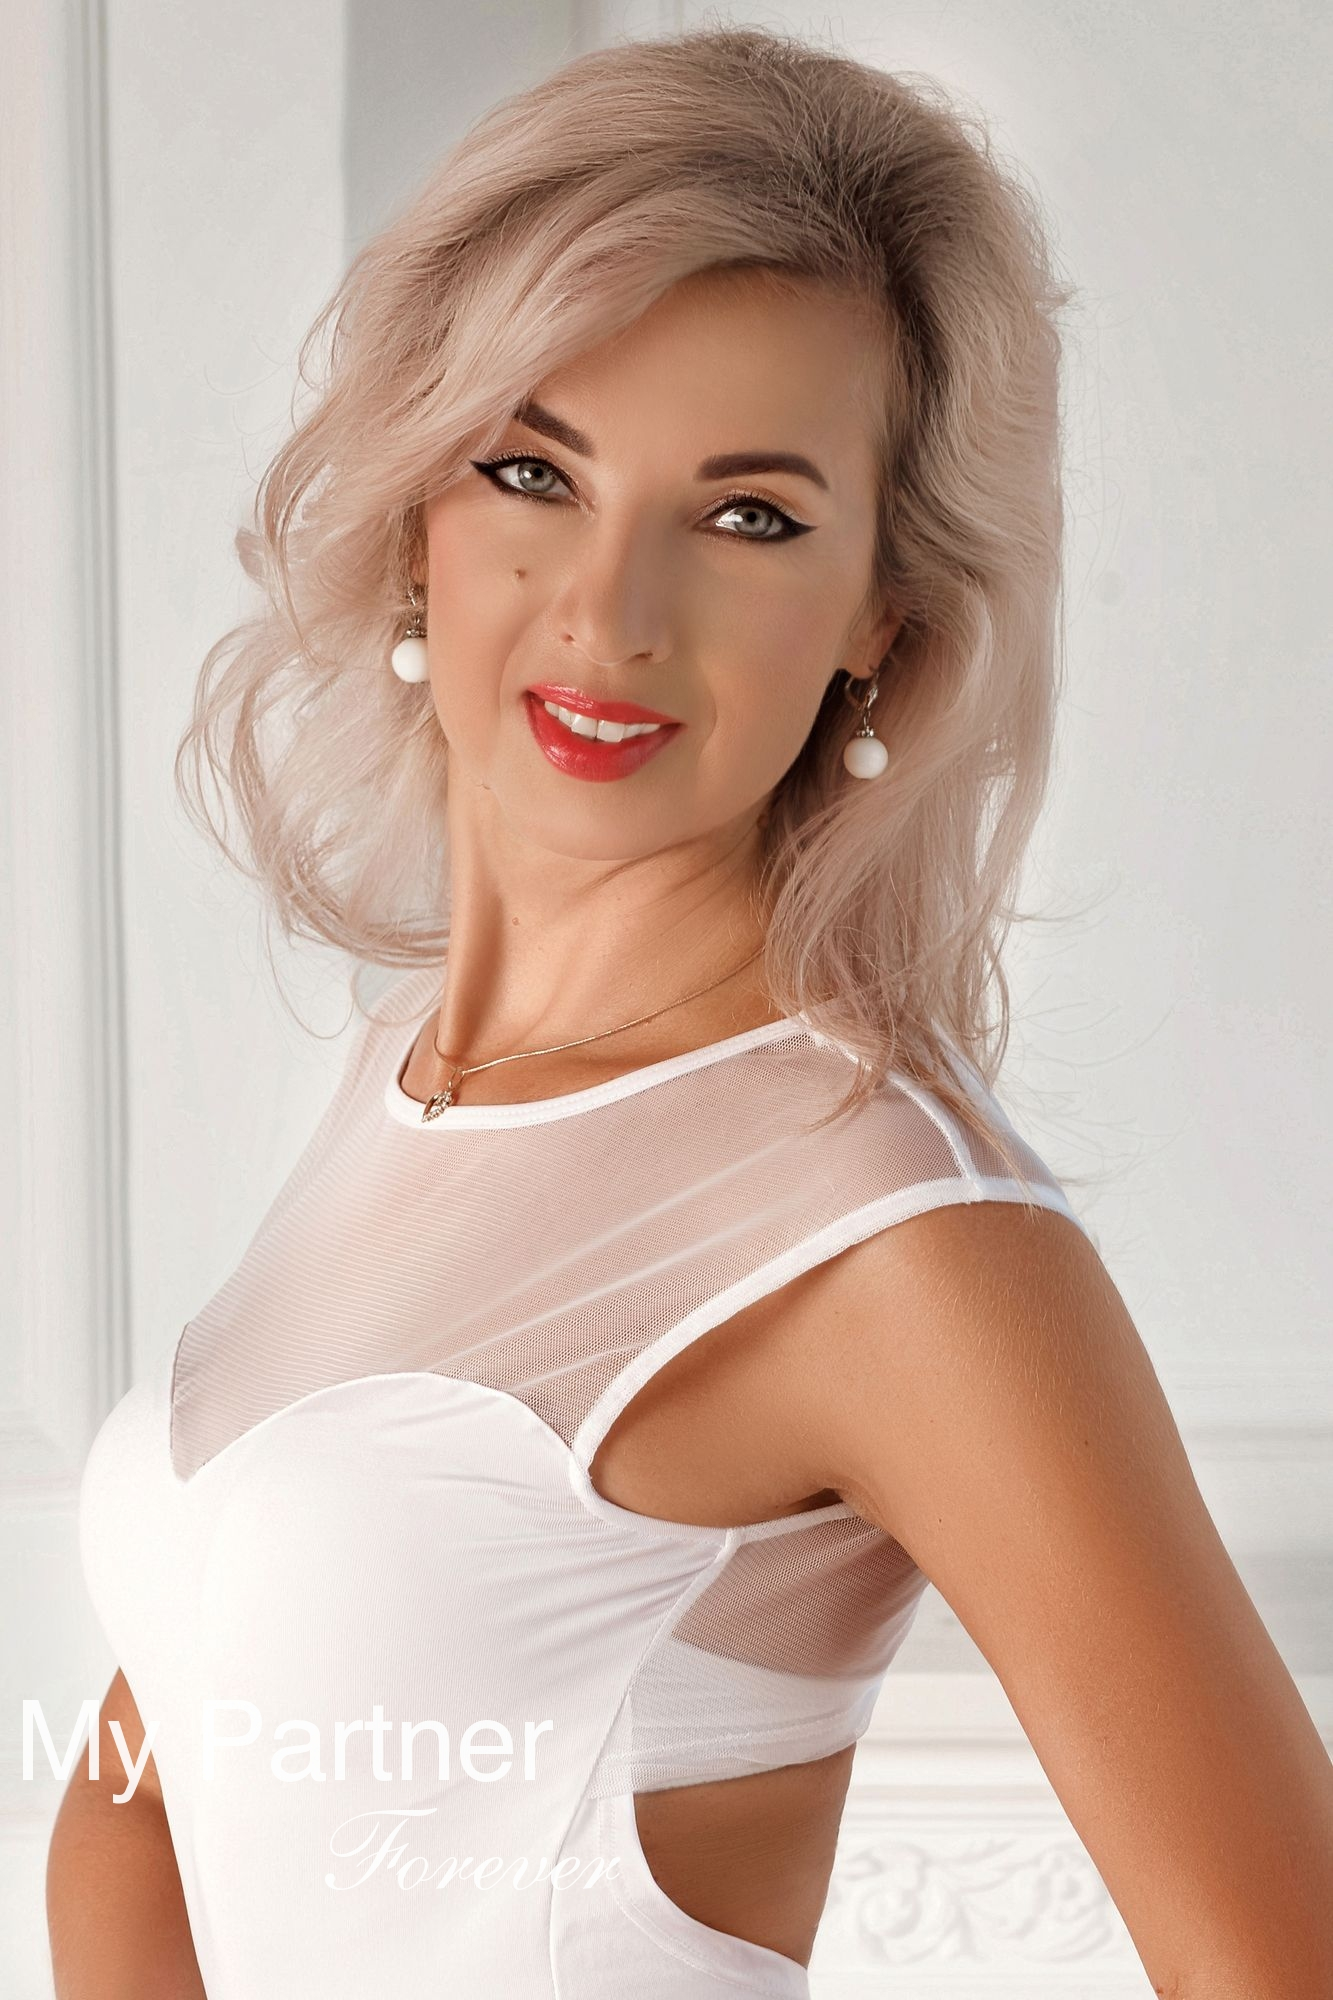 Ukrainian Woman Looking for Men - Tatiyana from Dniepropetrovsk, Ukraine